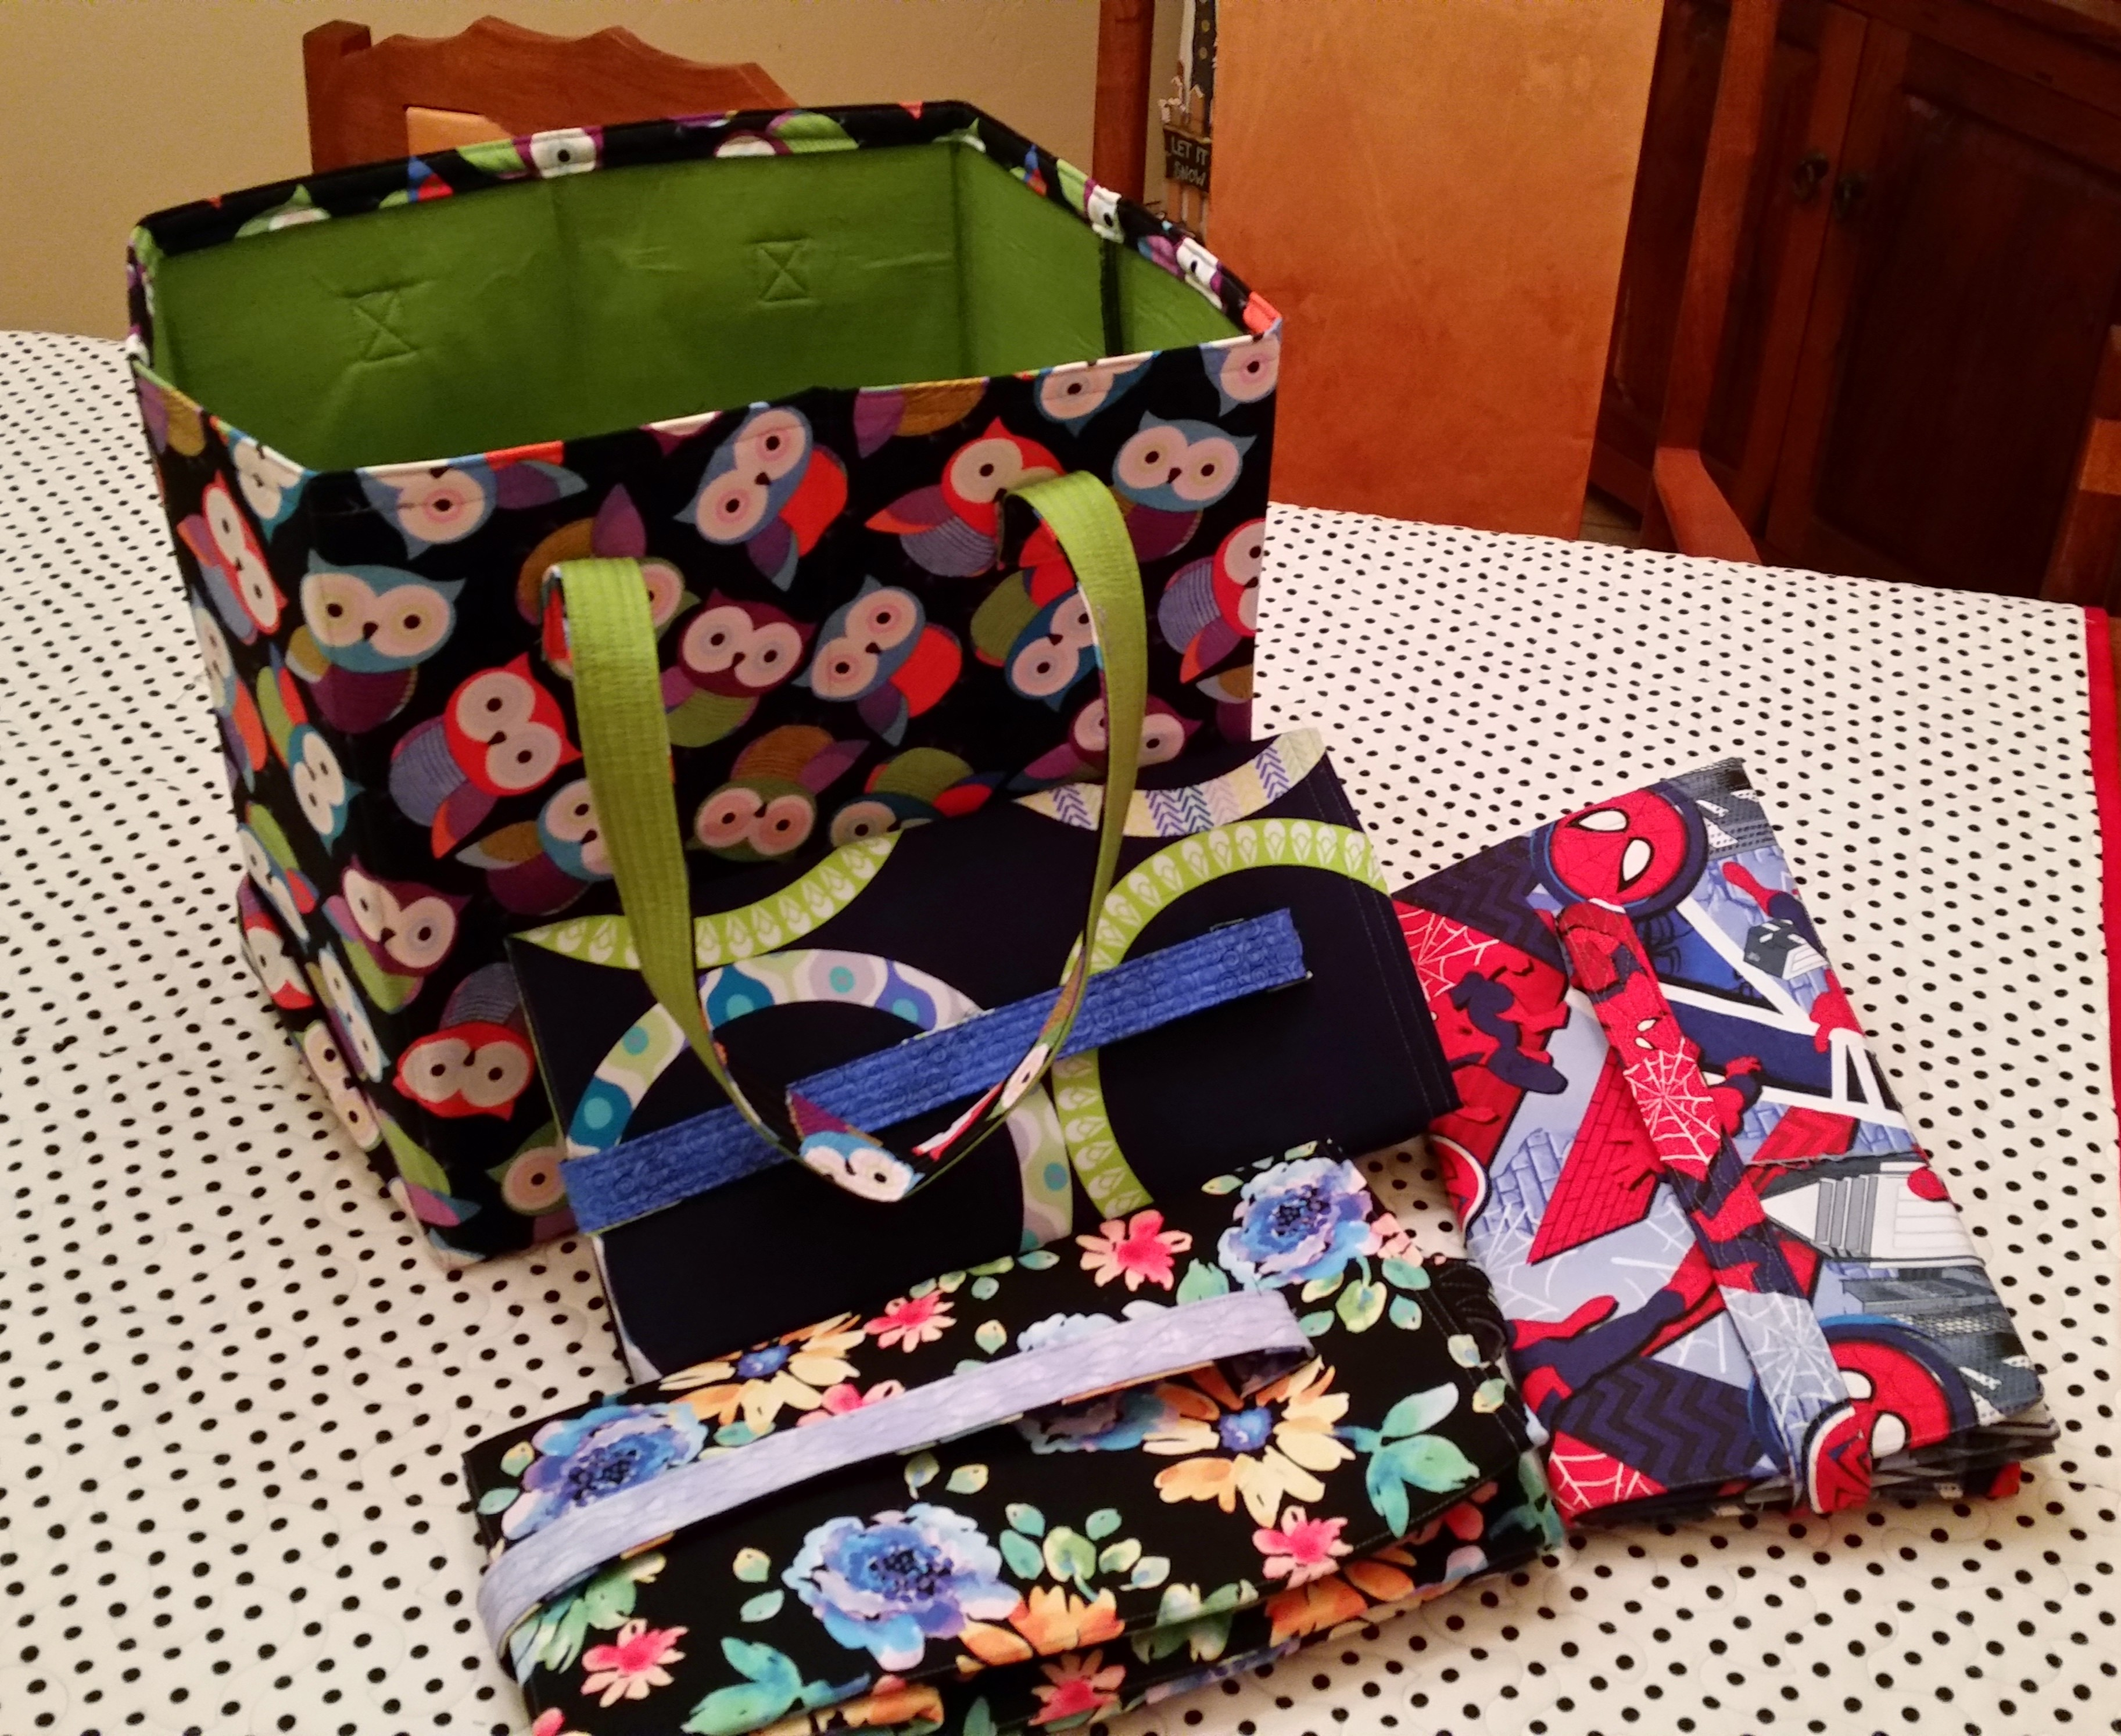 Atkinson Designs Stand N Stow : November st project grocery bags